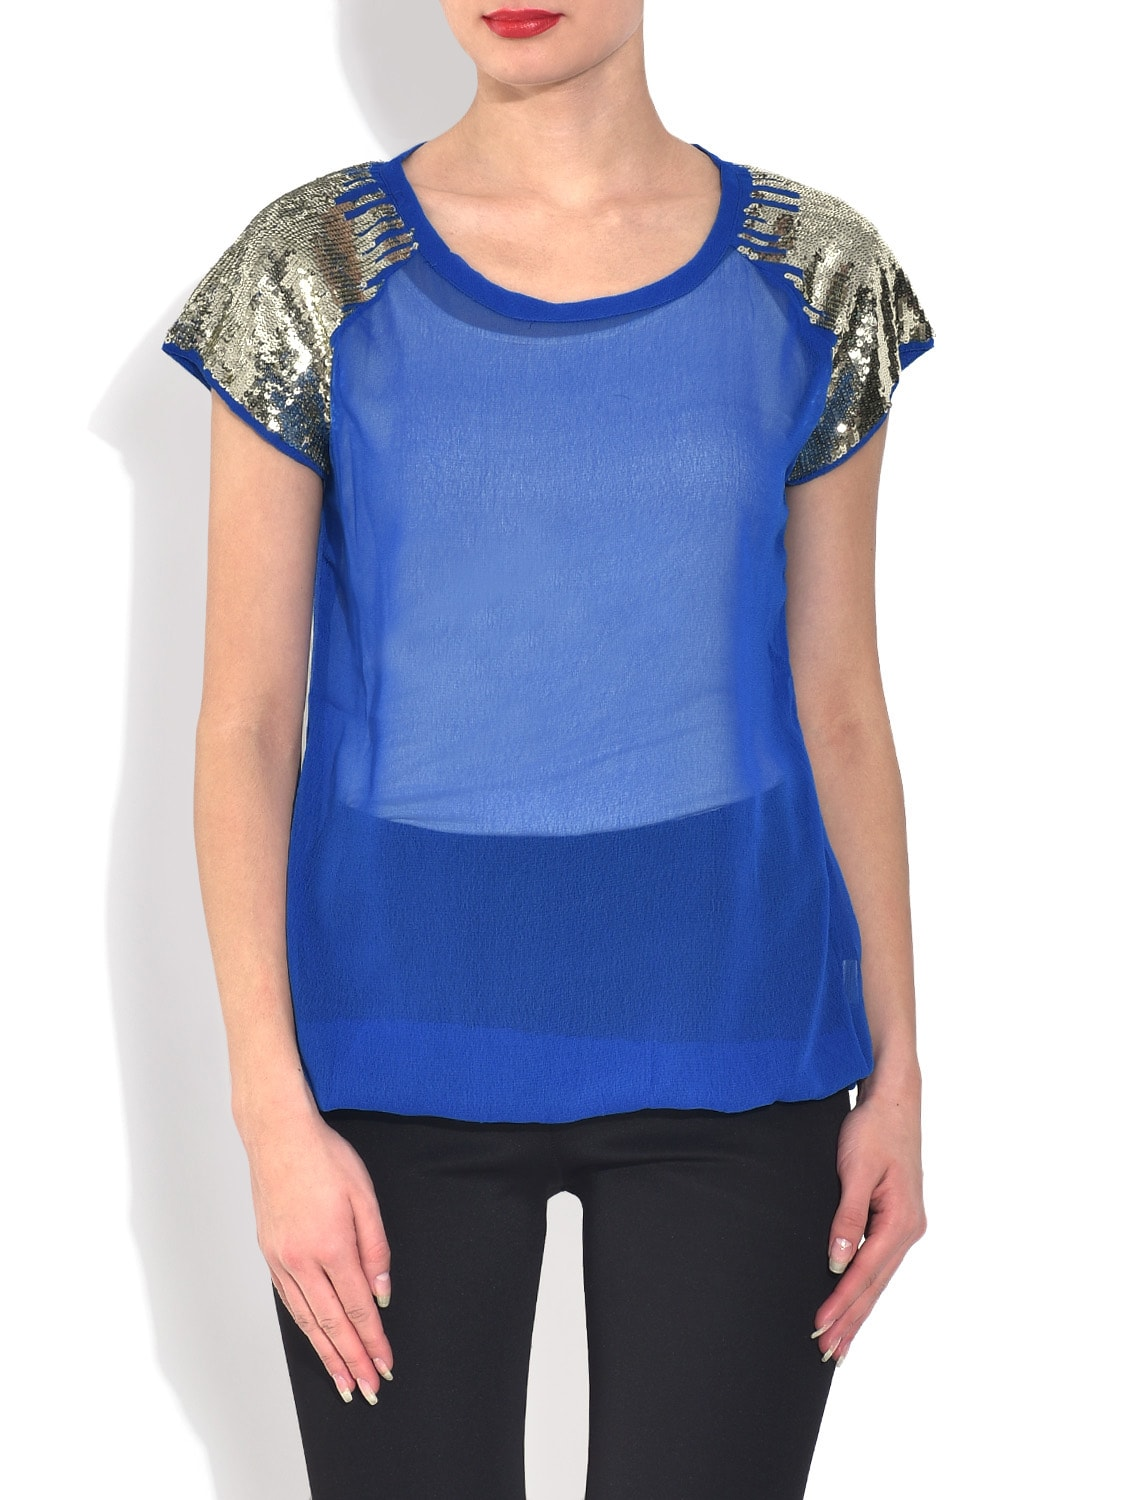 de4c22244657a Buy Solid Blue Embellished Top by Mayra - Online shopping for Tops in India